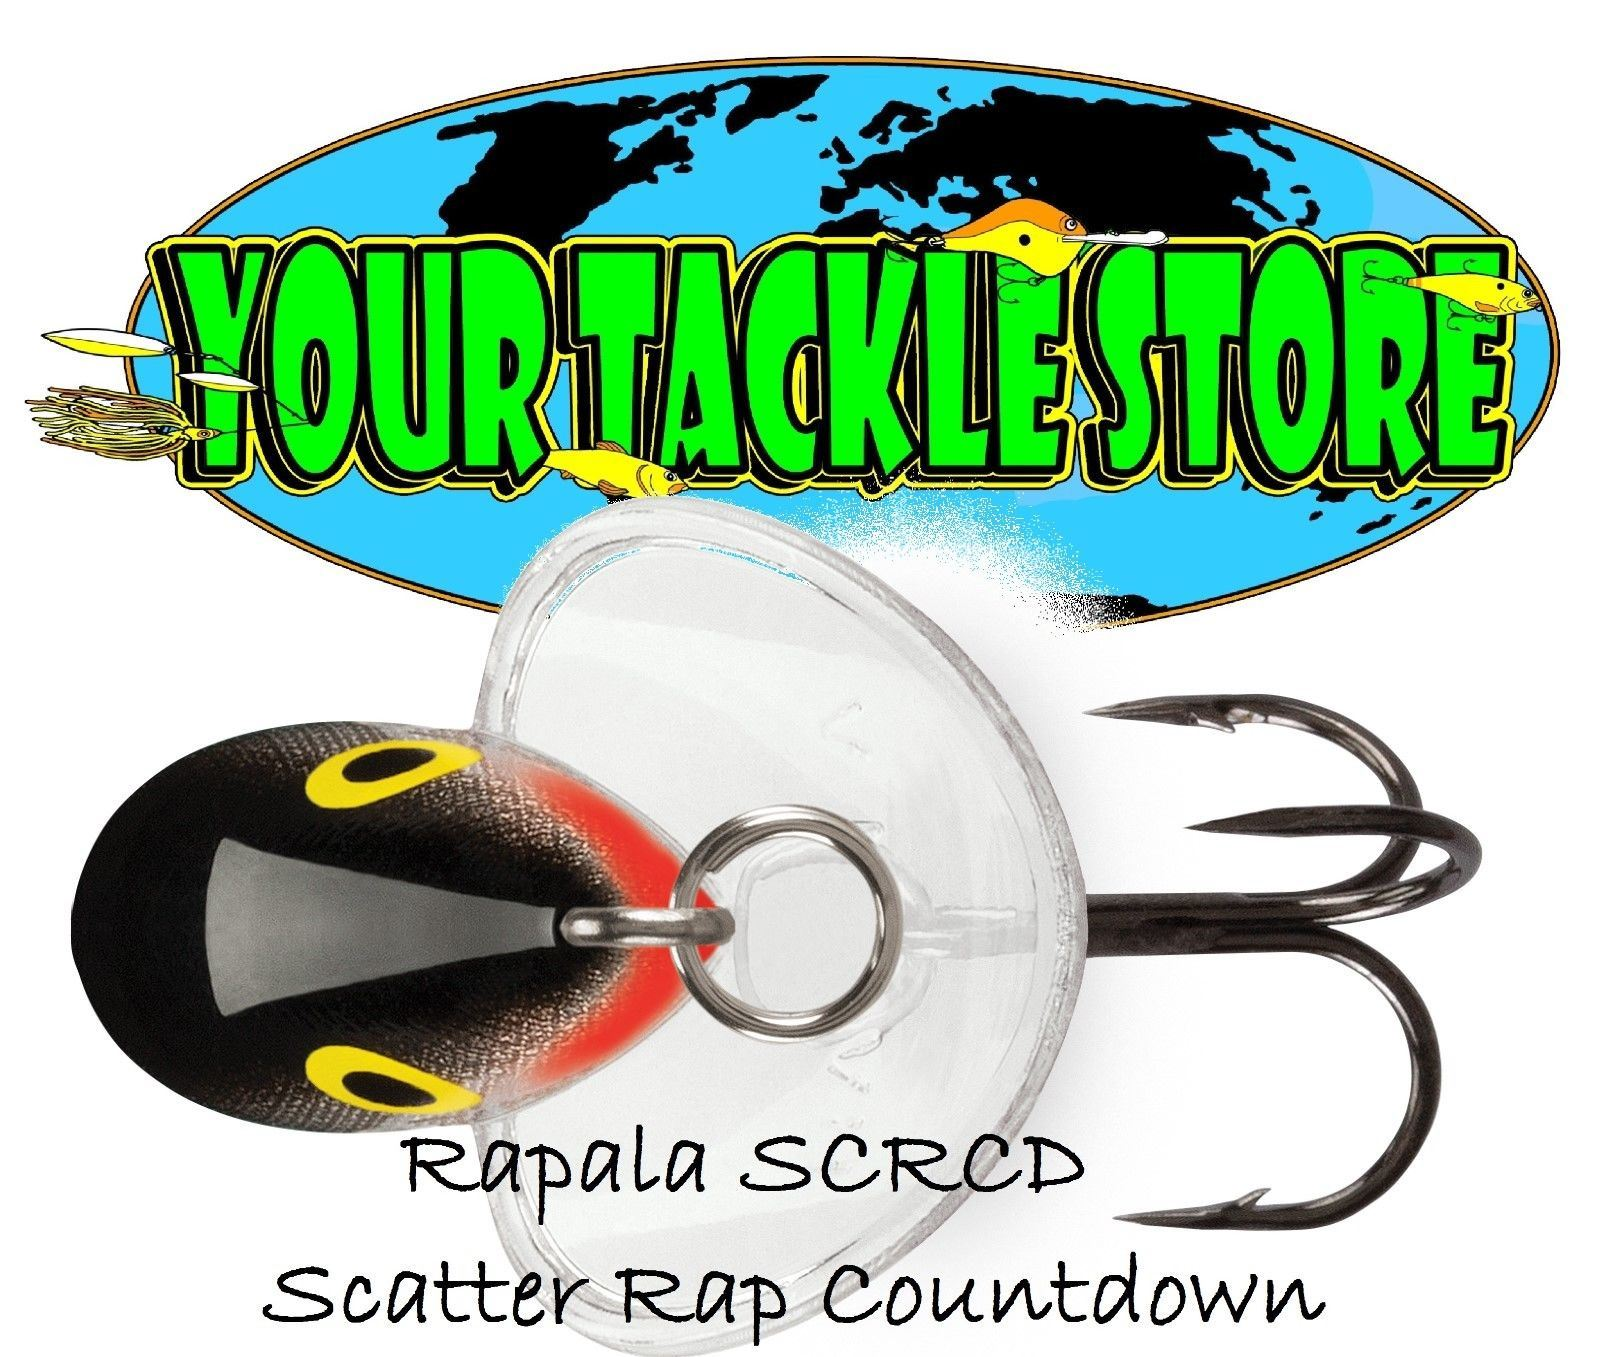 LOT OF 3 RAPALA SCATTER RAP COUNTDOWN SCRCD-07 RT//RAINBOW TROUT FISHING LURE